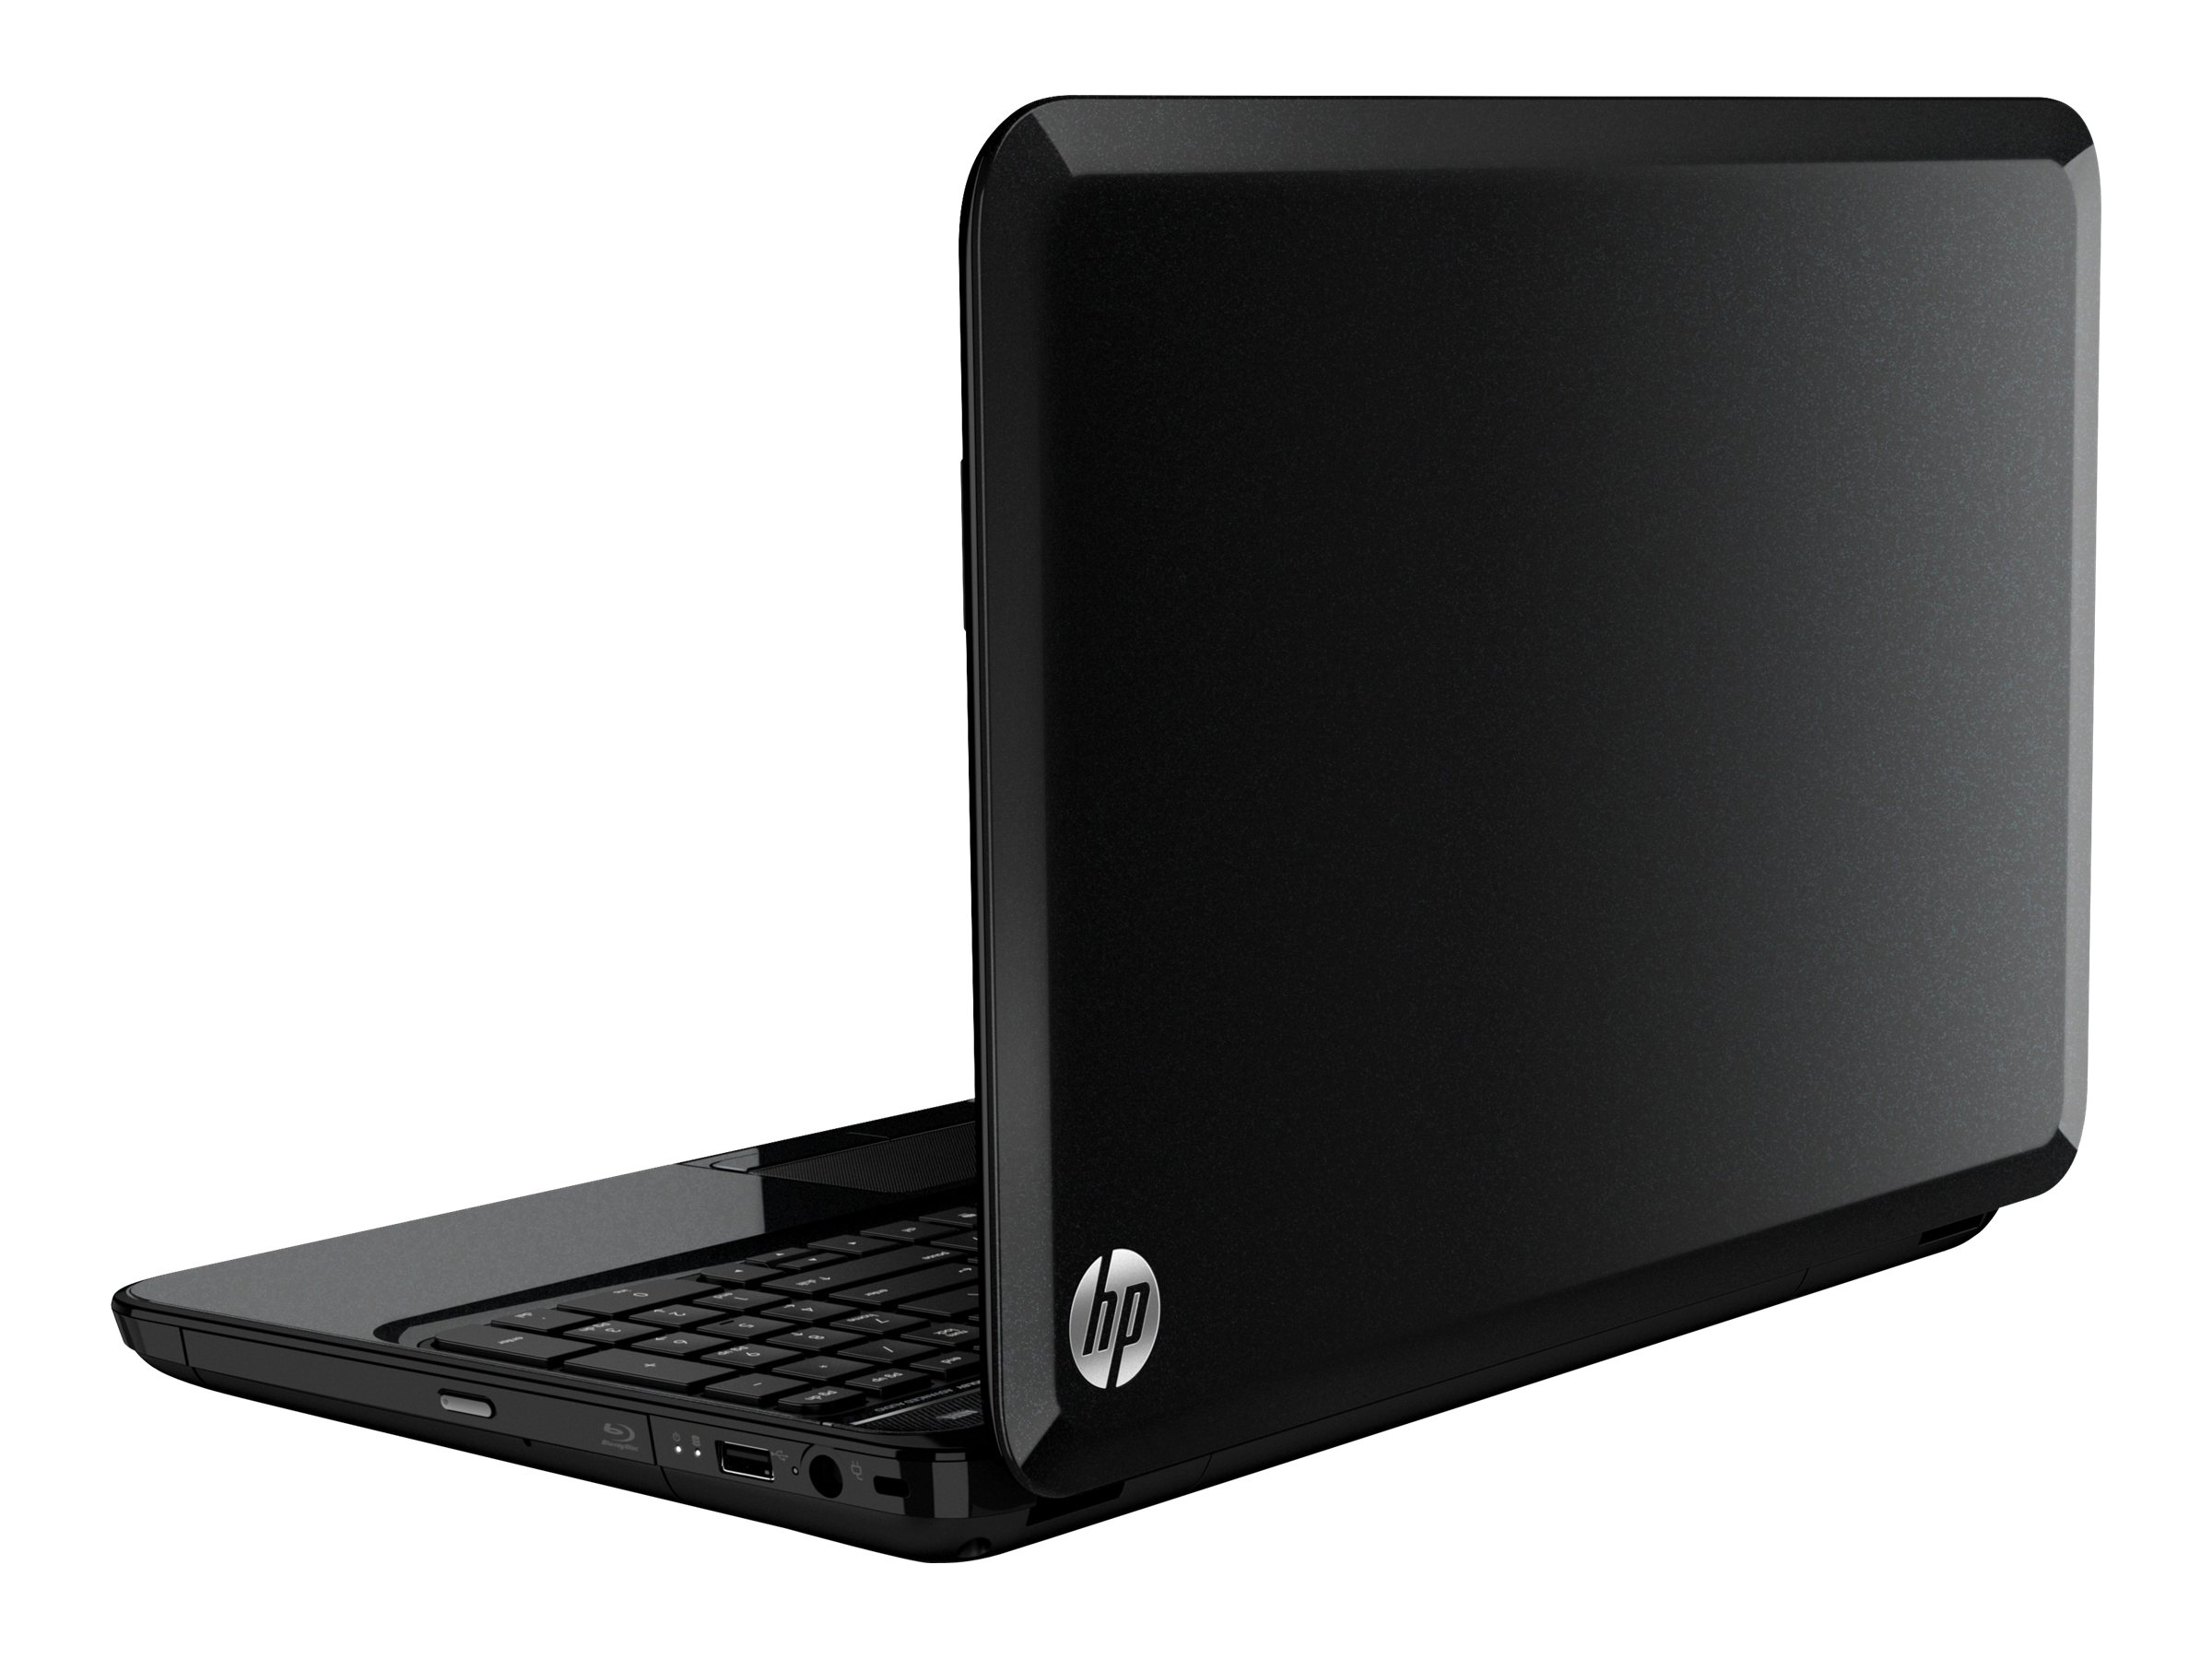 HP Pavilion g6-2260us : 2.4GHz Core i3 15.6in display, D1B38UA#ABA